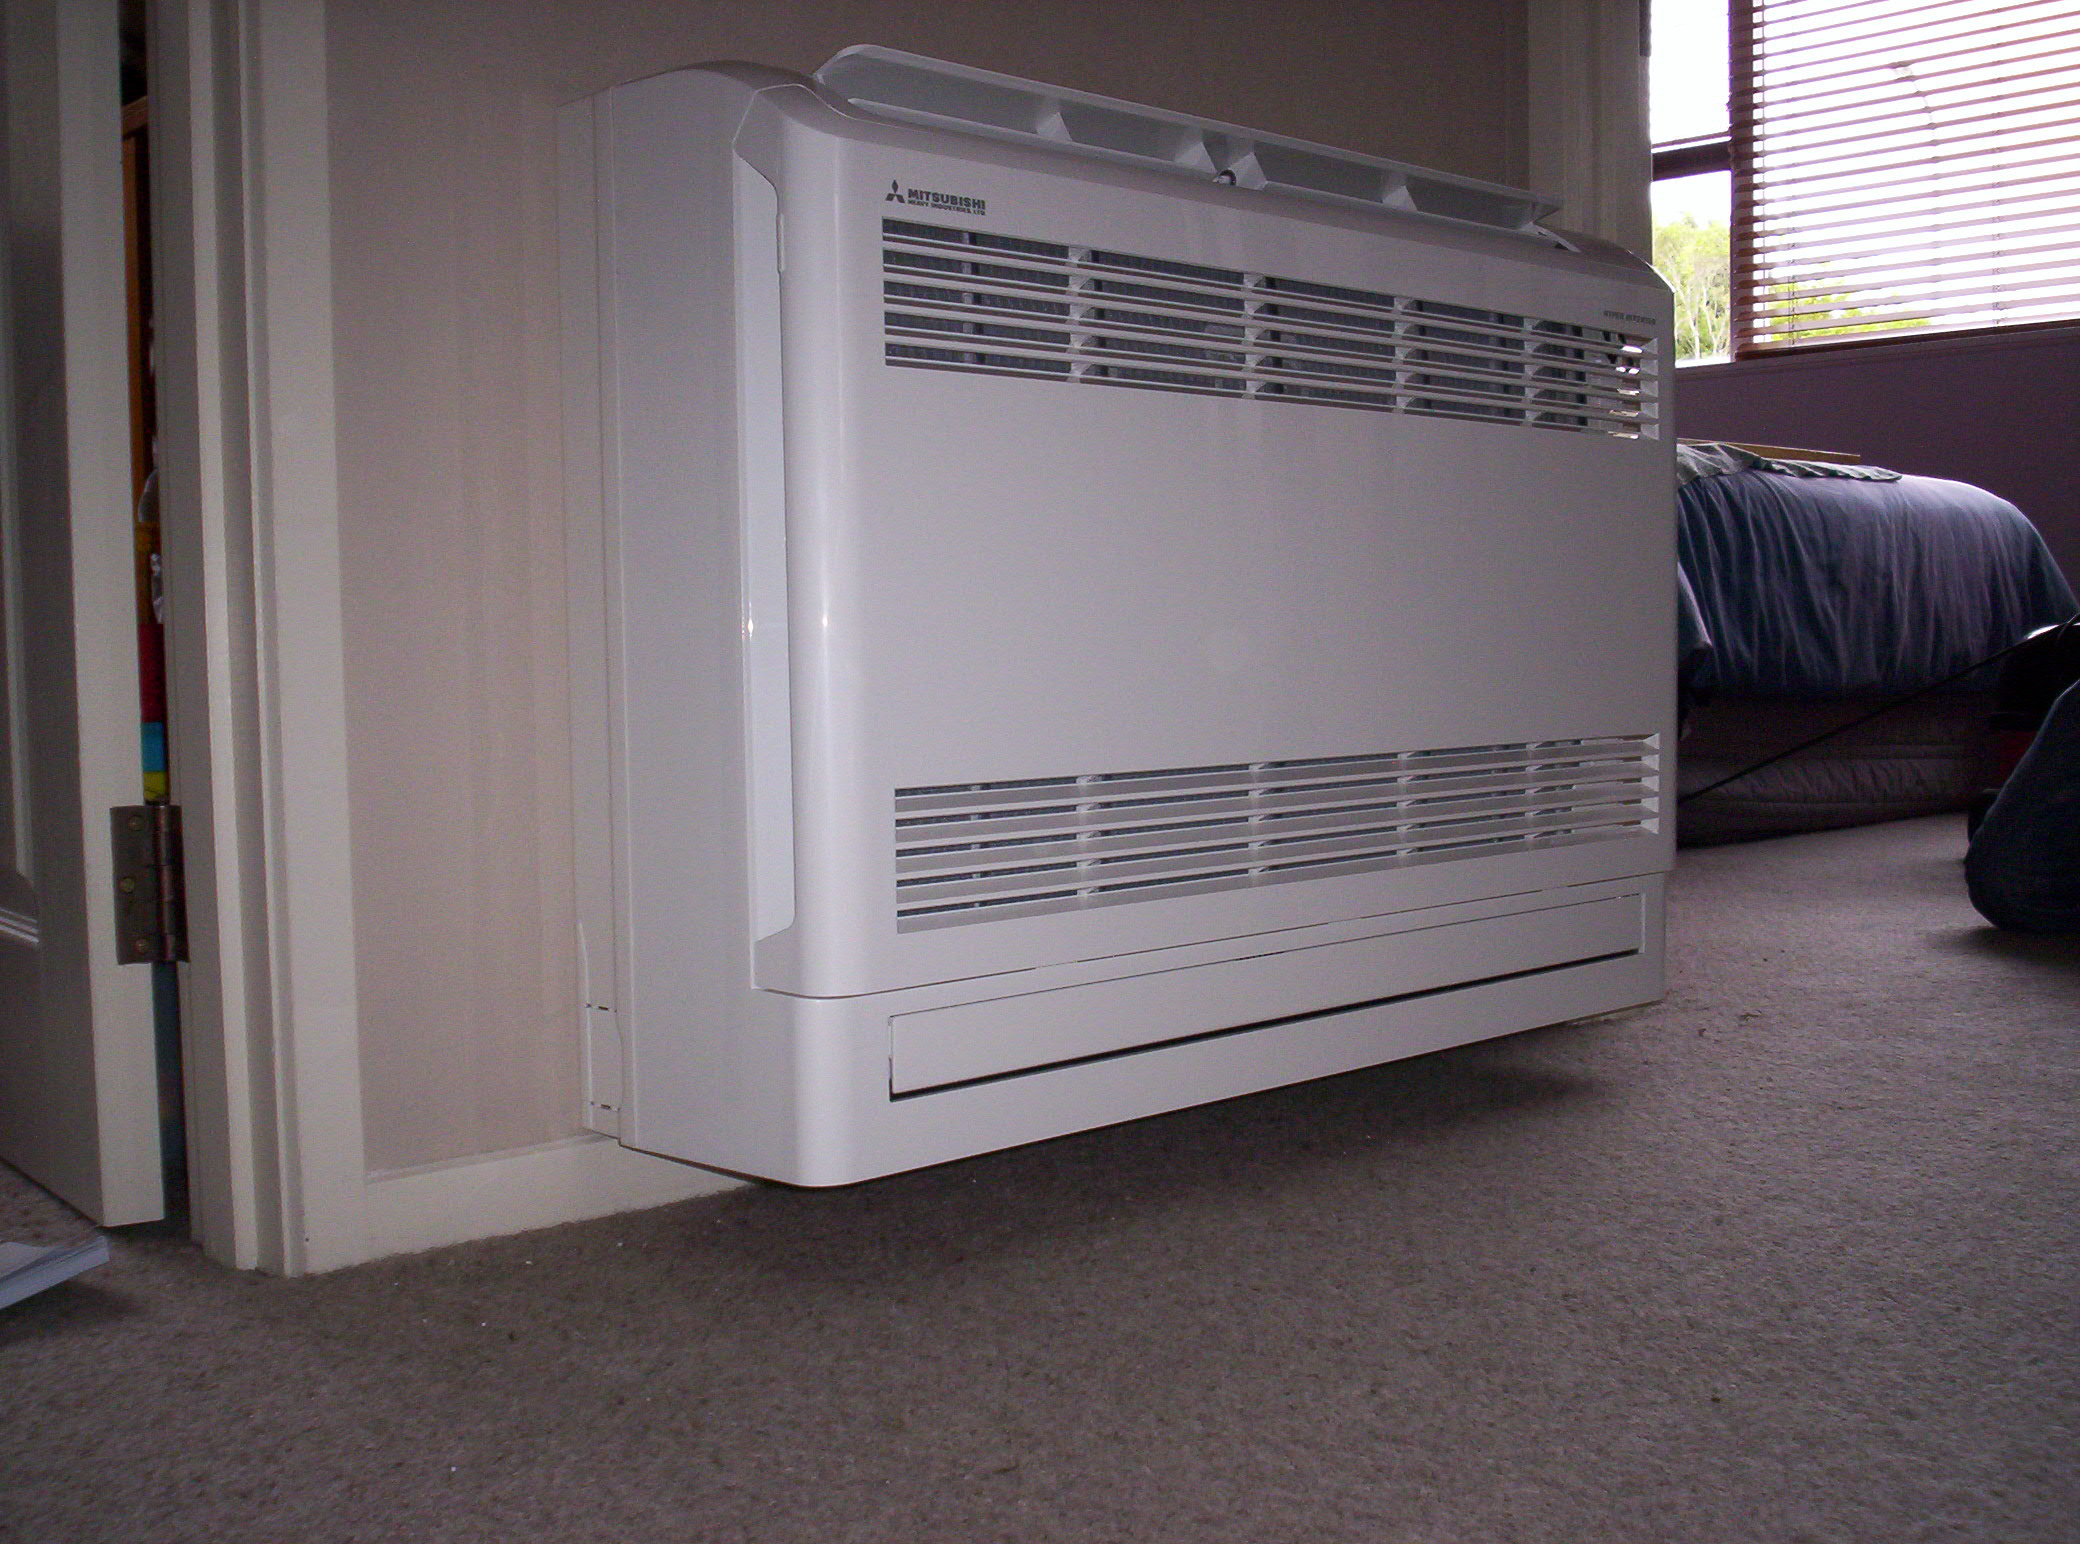 Free photo: Wall Mounted Air Conditioner - Heating, Heatpump, Floor